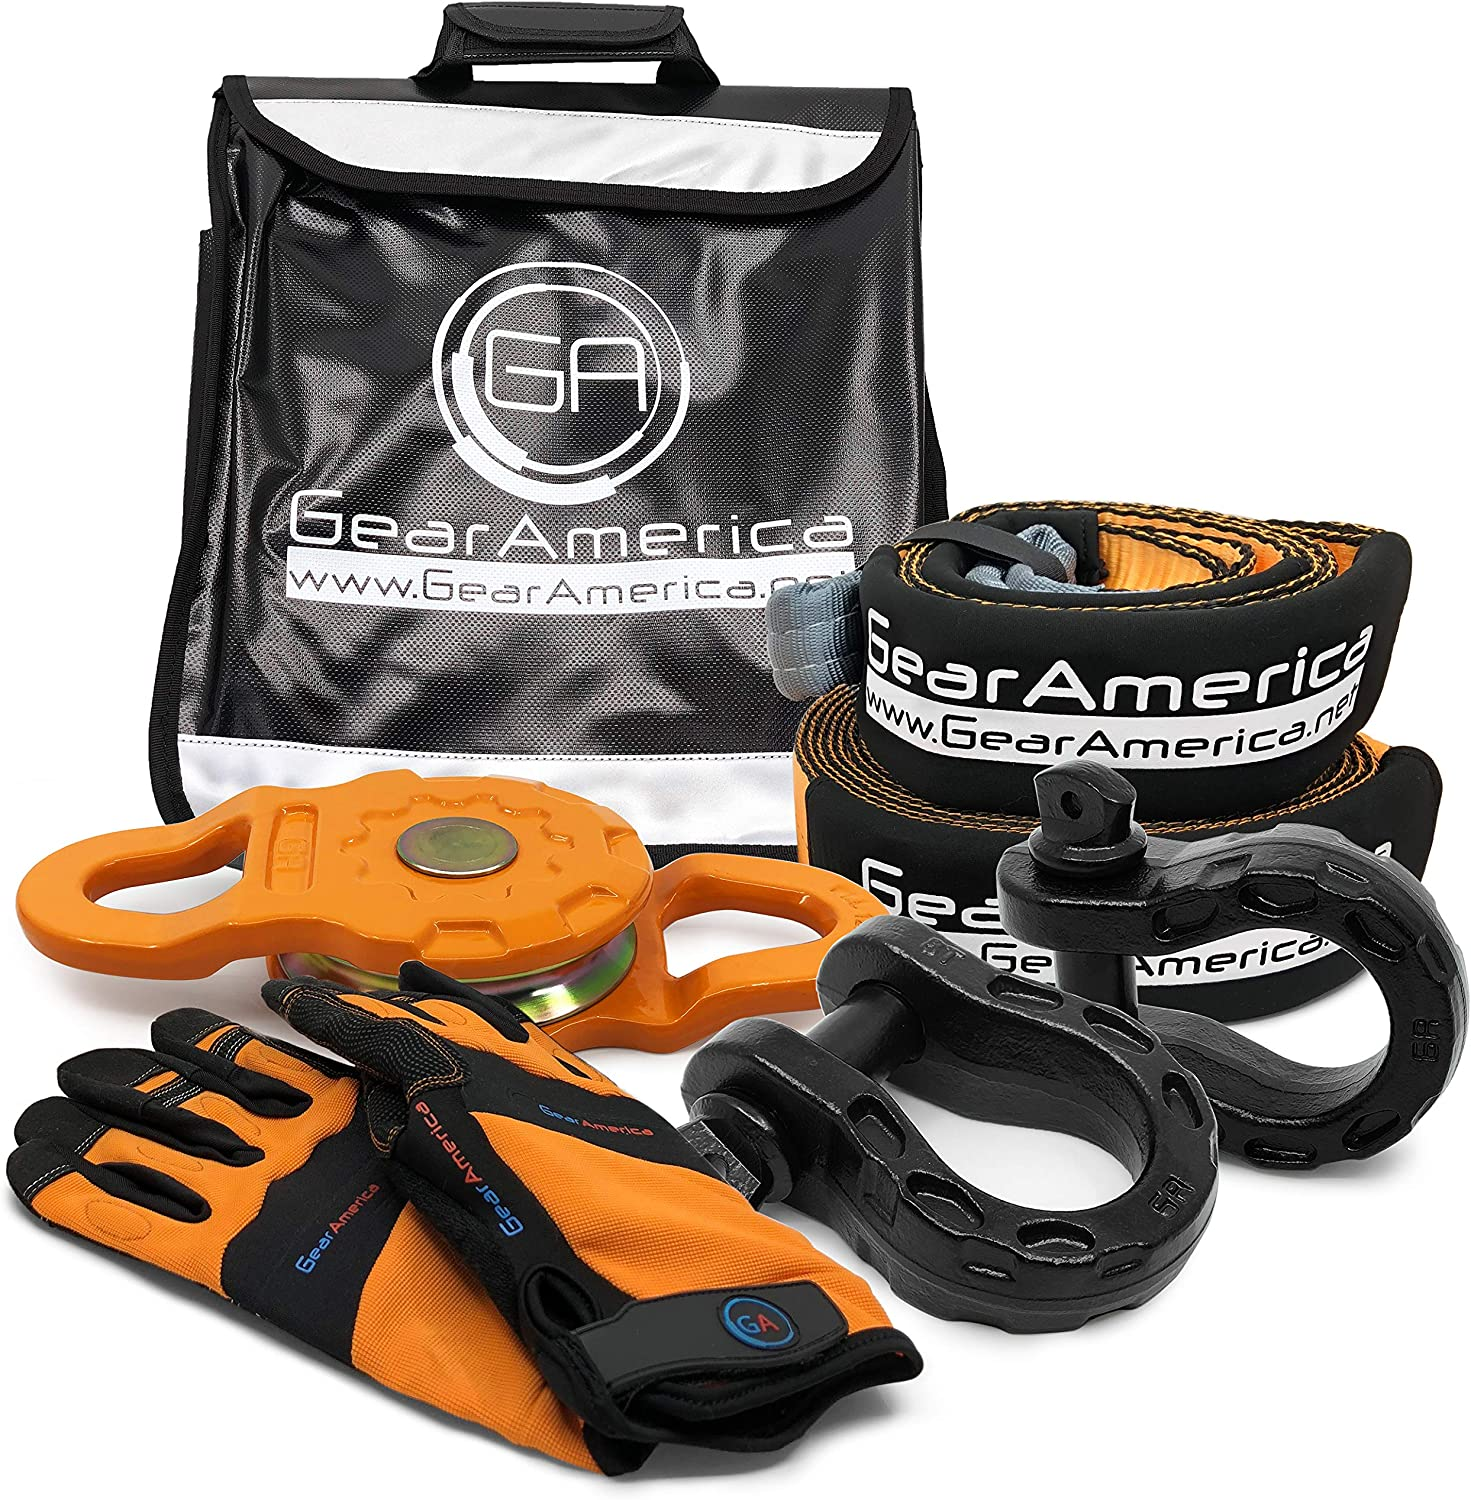 GearAmerica Off-Road Recovery Mega Kit Max 49% OFF Reservation Tow Saver Tree + Strap